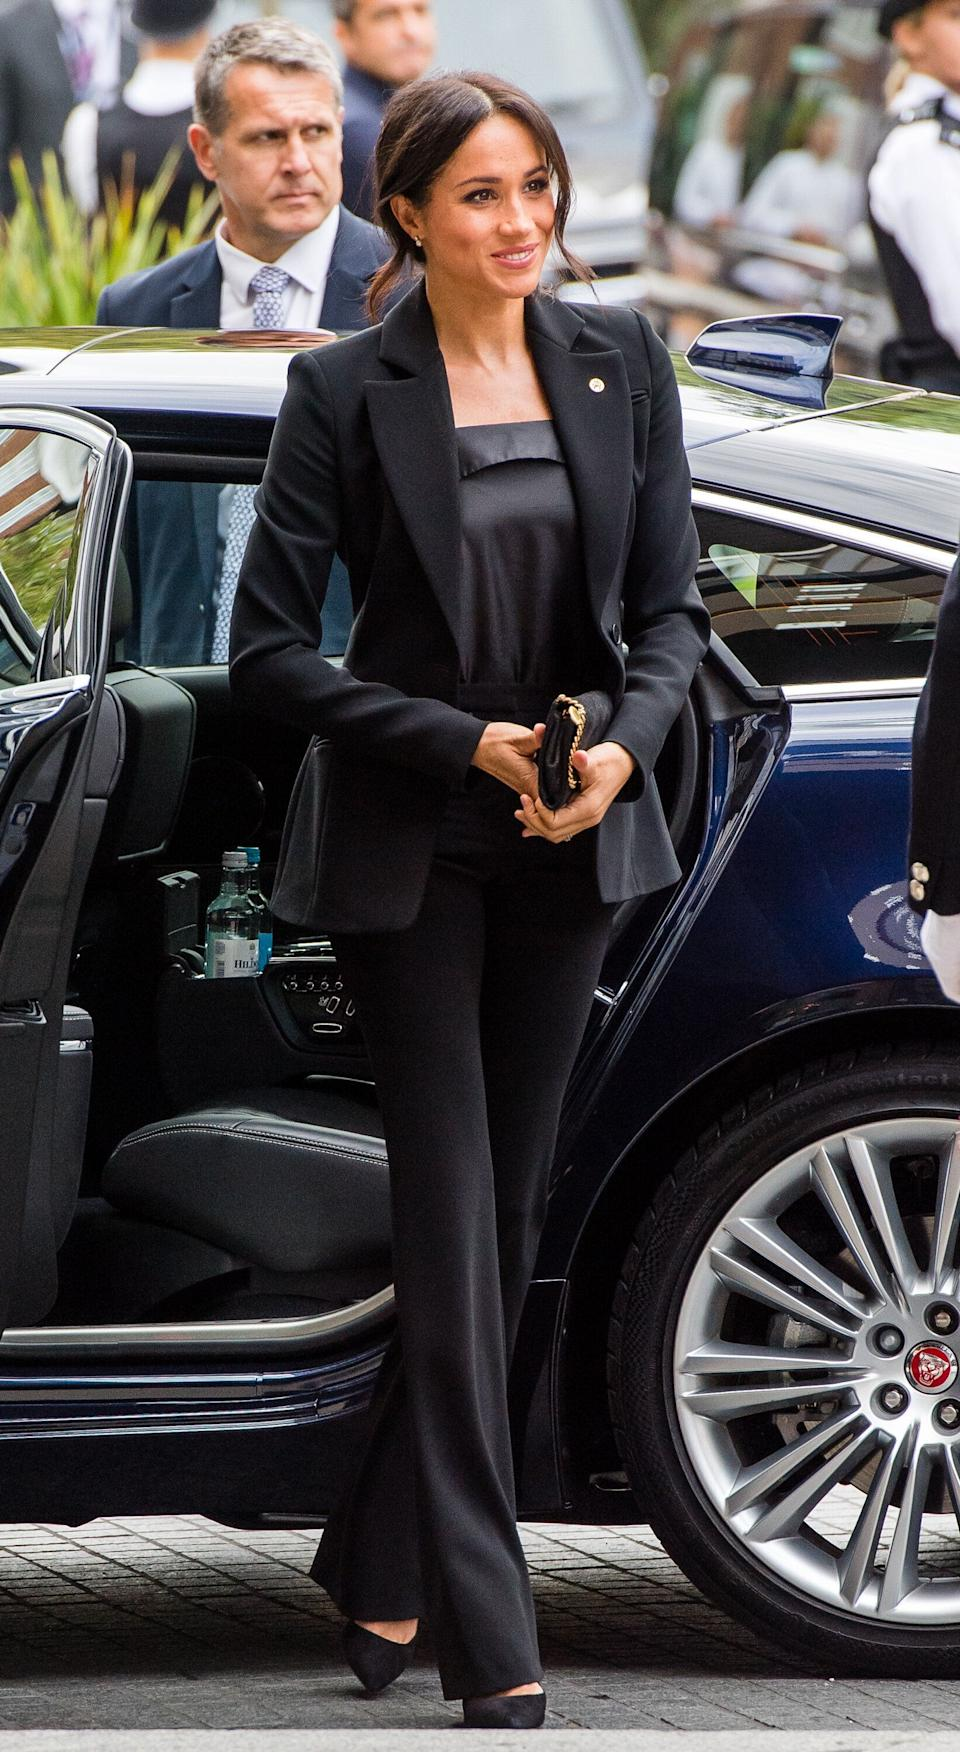 Meghan, Duchess of Sussex attends the WellChild awards at Royal Lancaster Hotel on September 4, 2018 in London, England. The Duke of Susssex has been patron of WellChild since 2007. (Photo: Samir Hussein/Samir Hussein/WireImage)